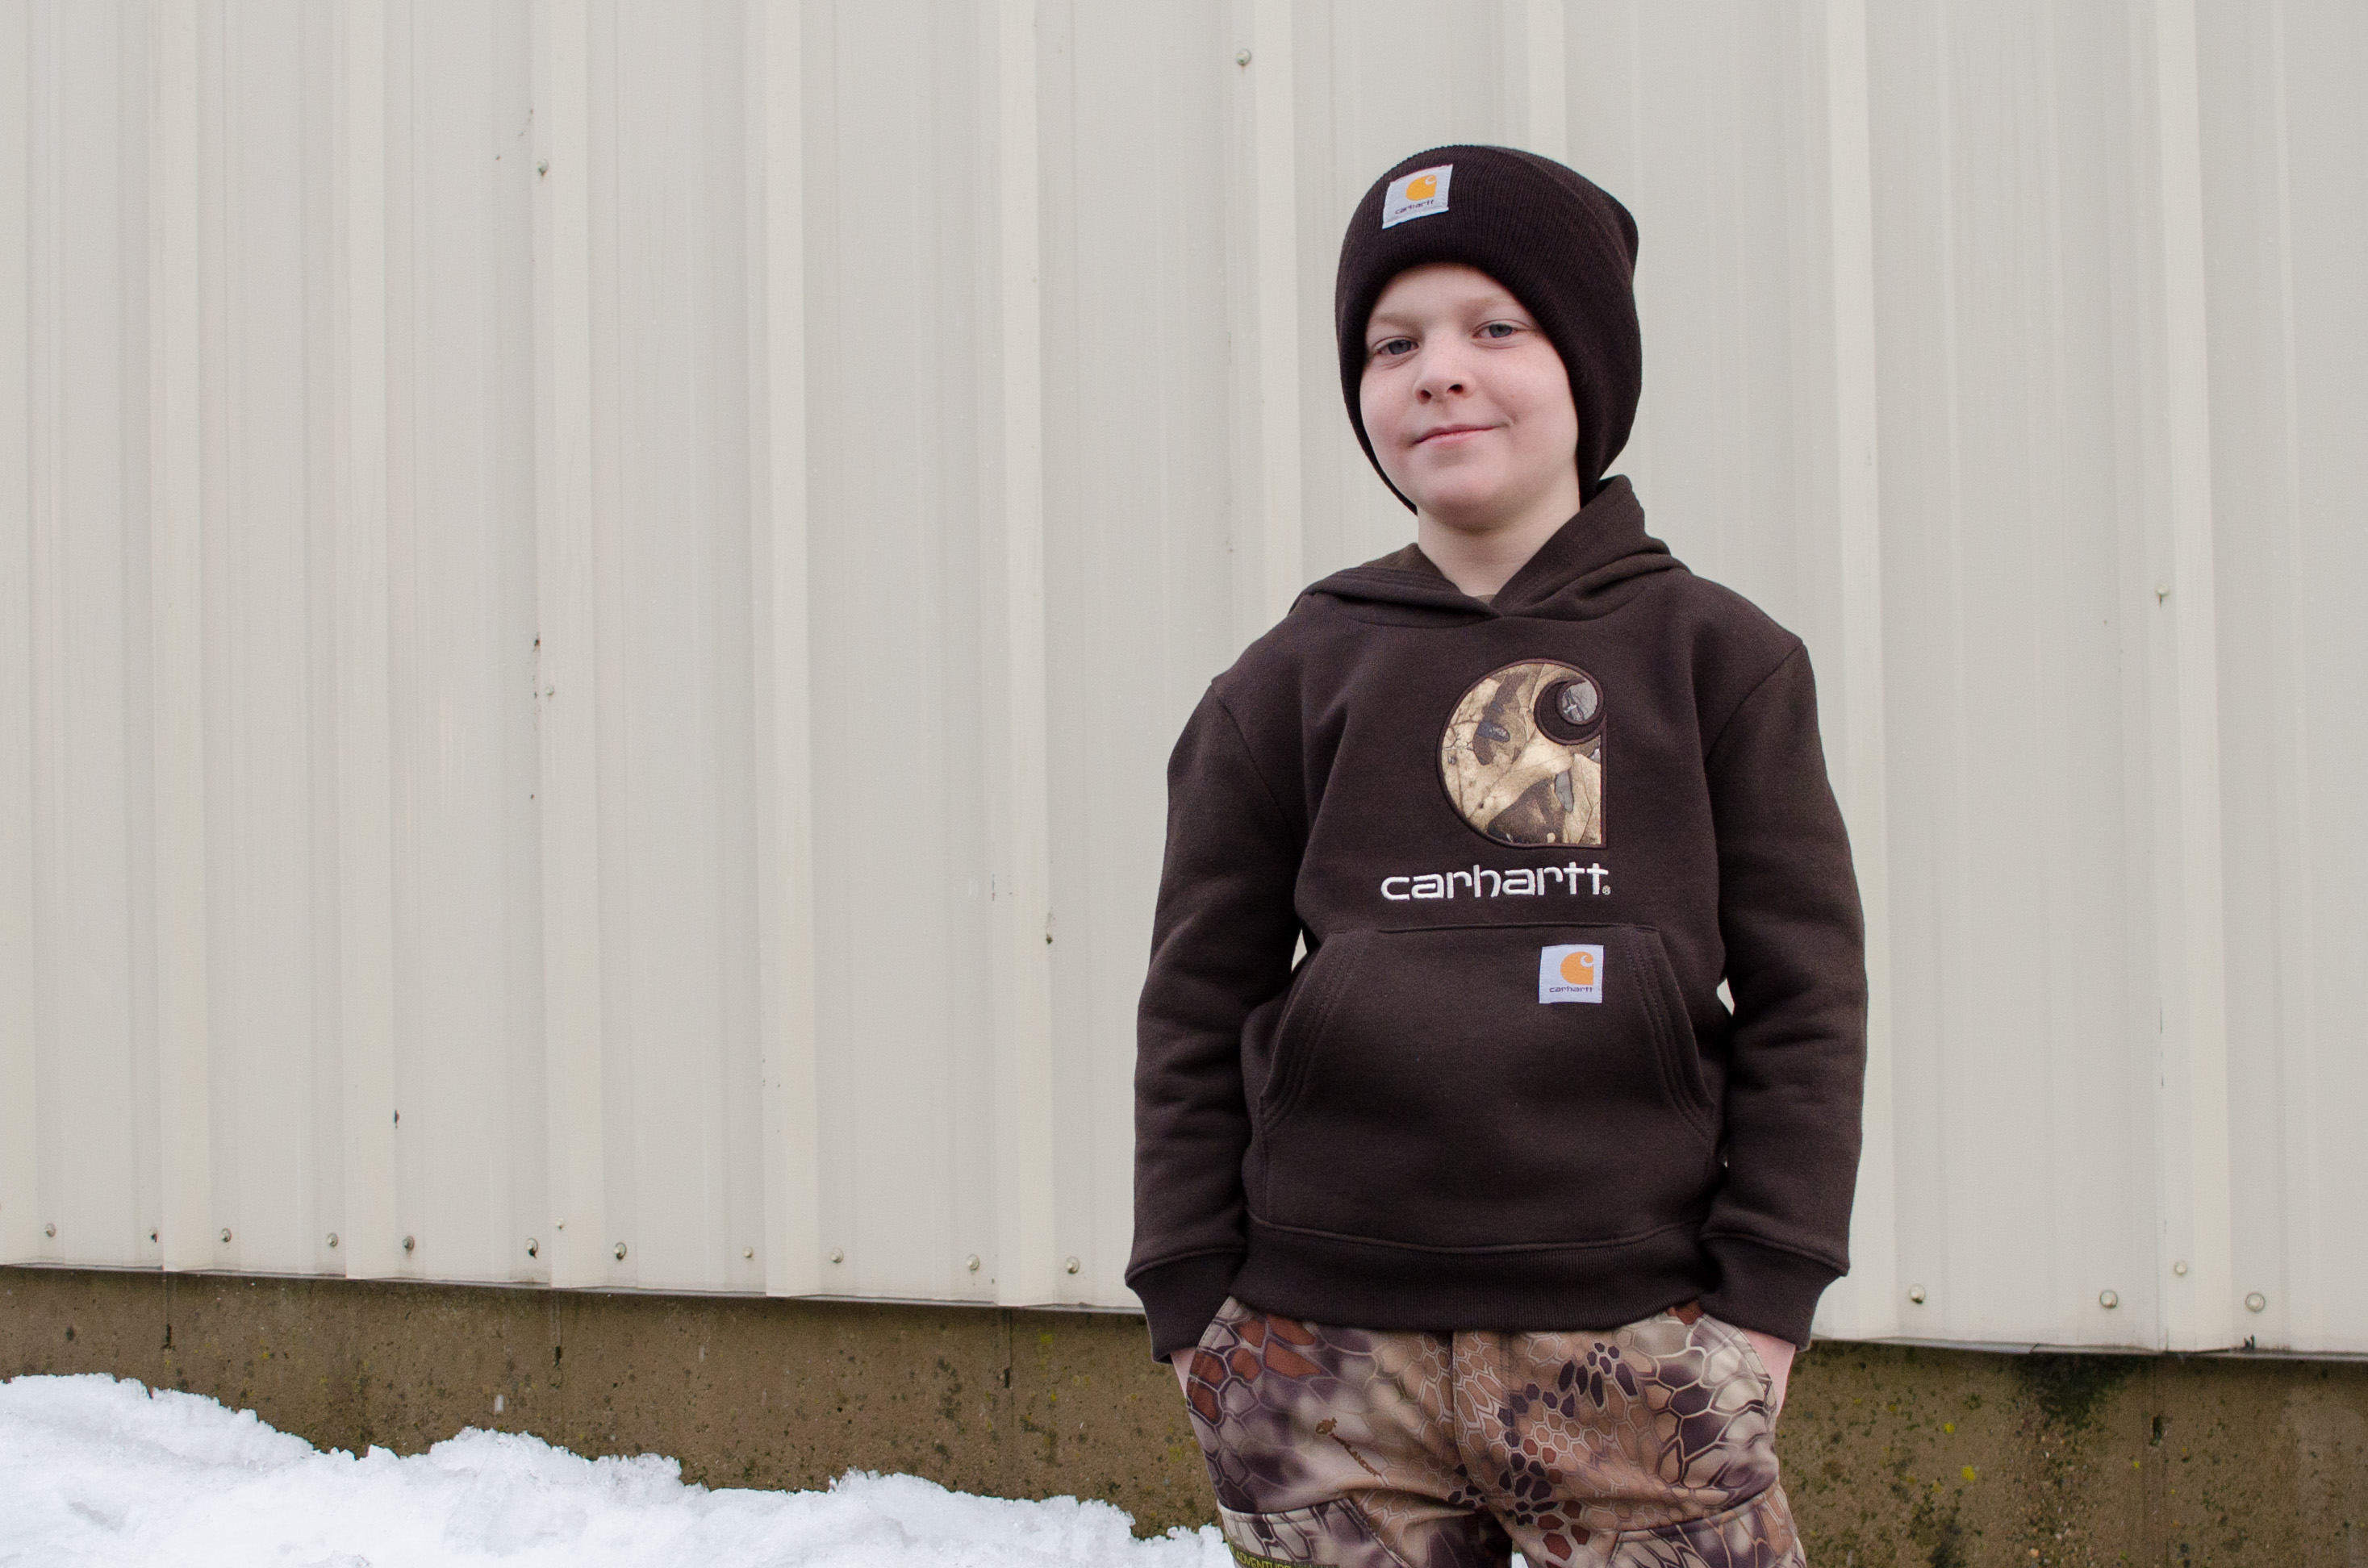 eb97e9cf Sam with his boys Carhartt sweatshirt and hat - Smith and Edwards Blog